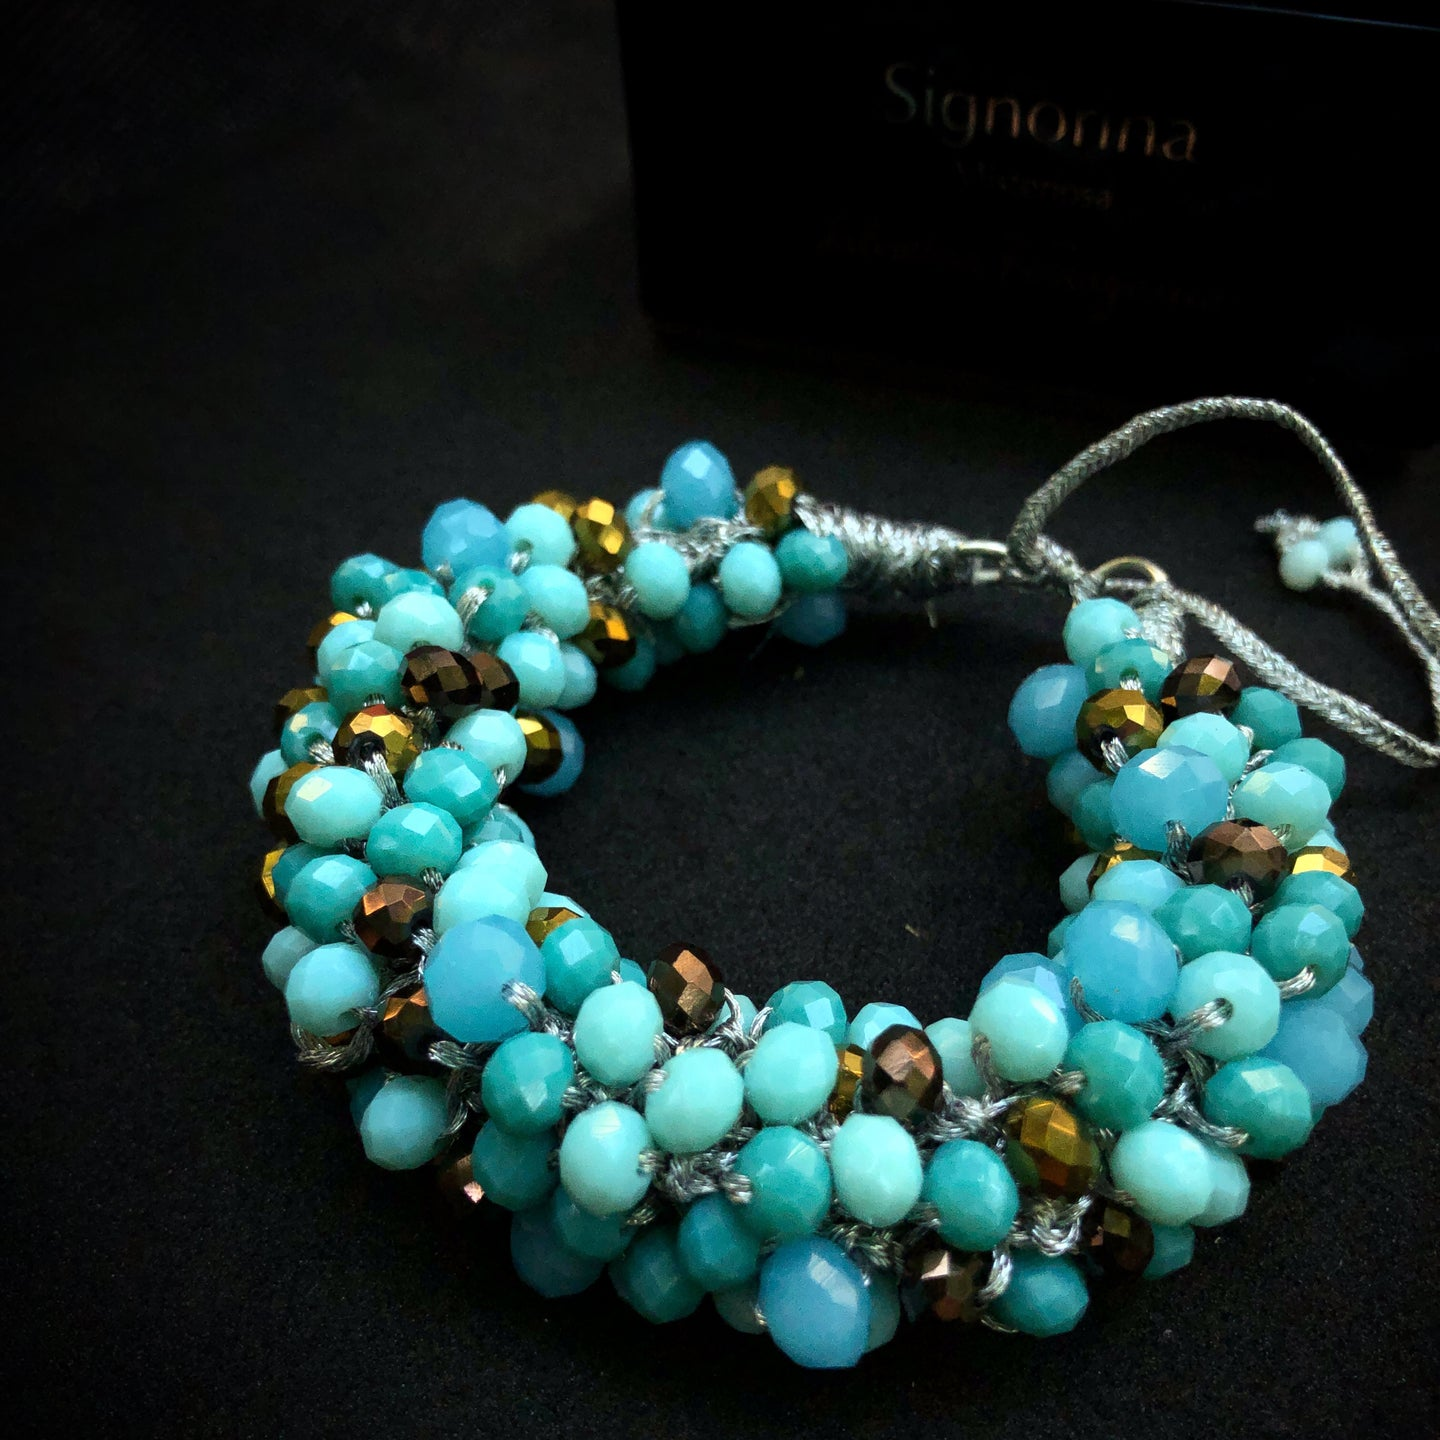 LIDIA Braided Bracelet | Turquoise + gold + silver